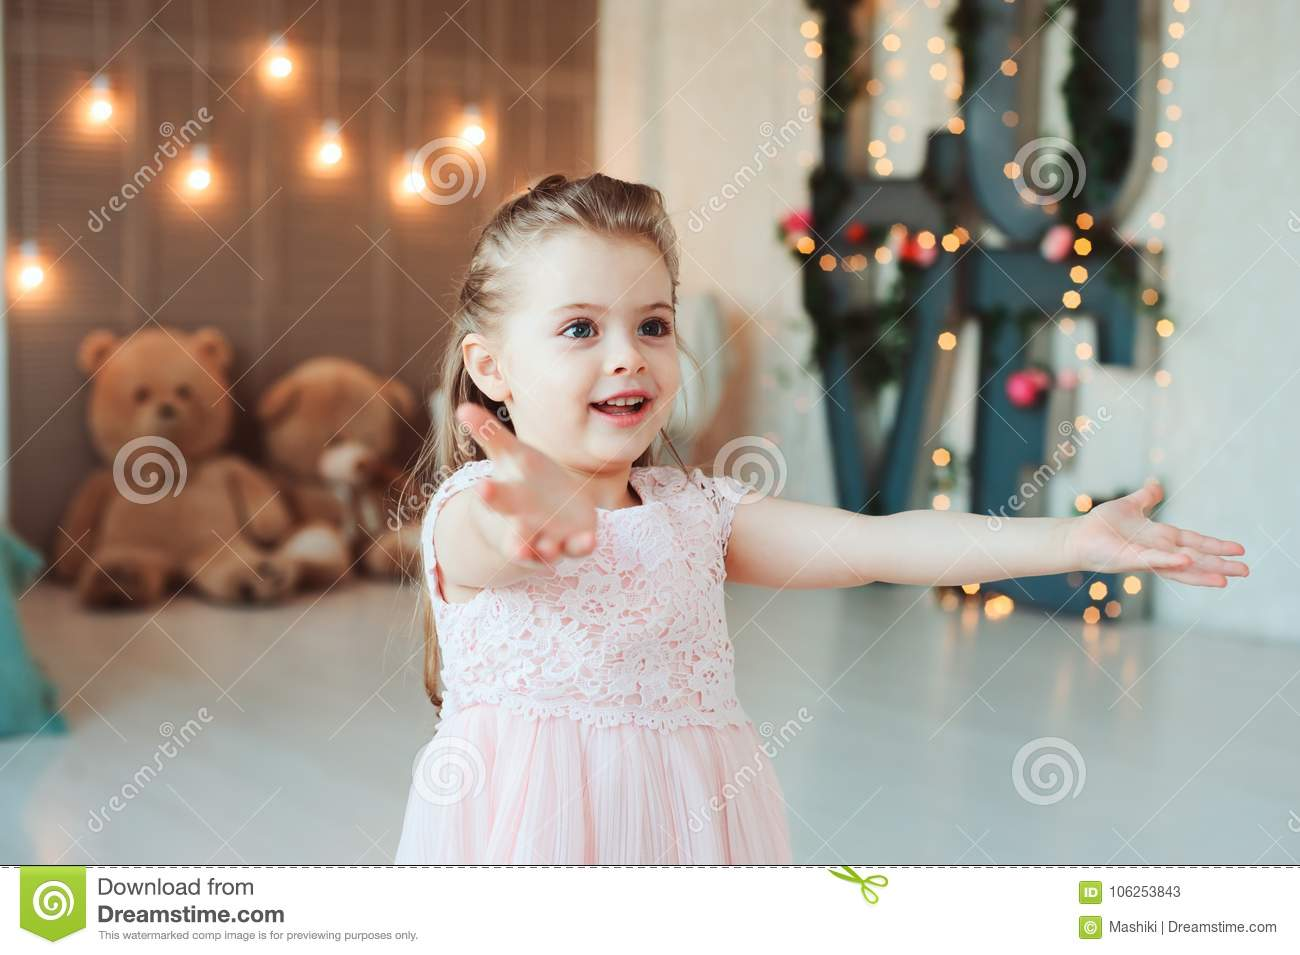 Cute Smiling 5 Years Old Child Girl Celebrating Birthday